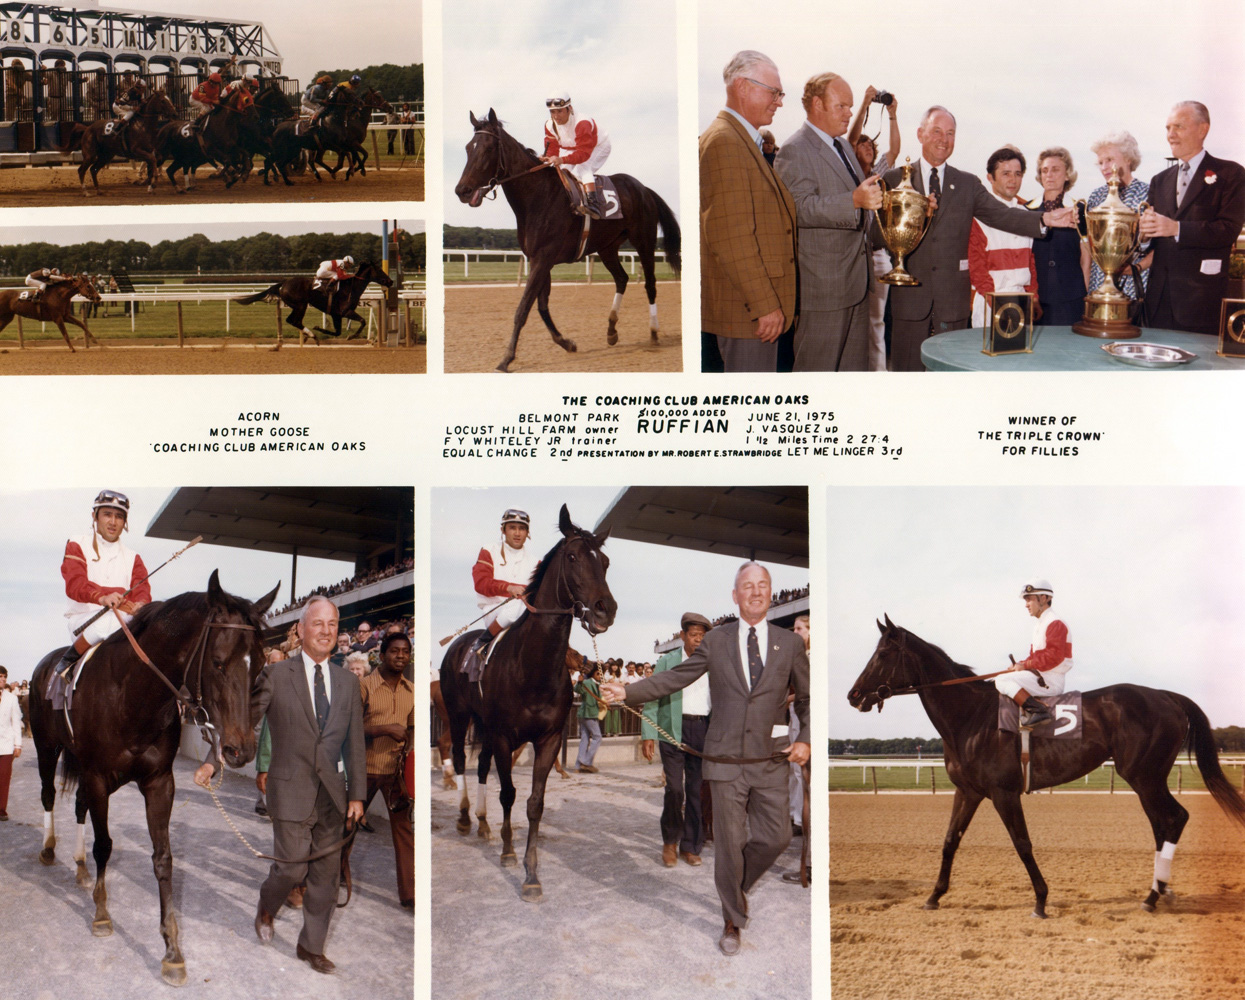 Win composite photograph from the 1975 Coaching Club American Oaks at Belmont, won by Ruffian (Jacinto Vasquez up), trained by Frank Whiteley, Jr. (NYRA/Museum Collection)